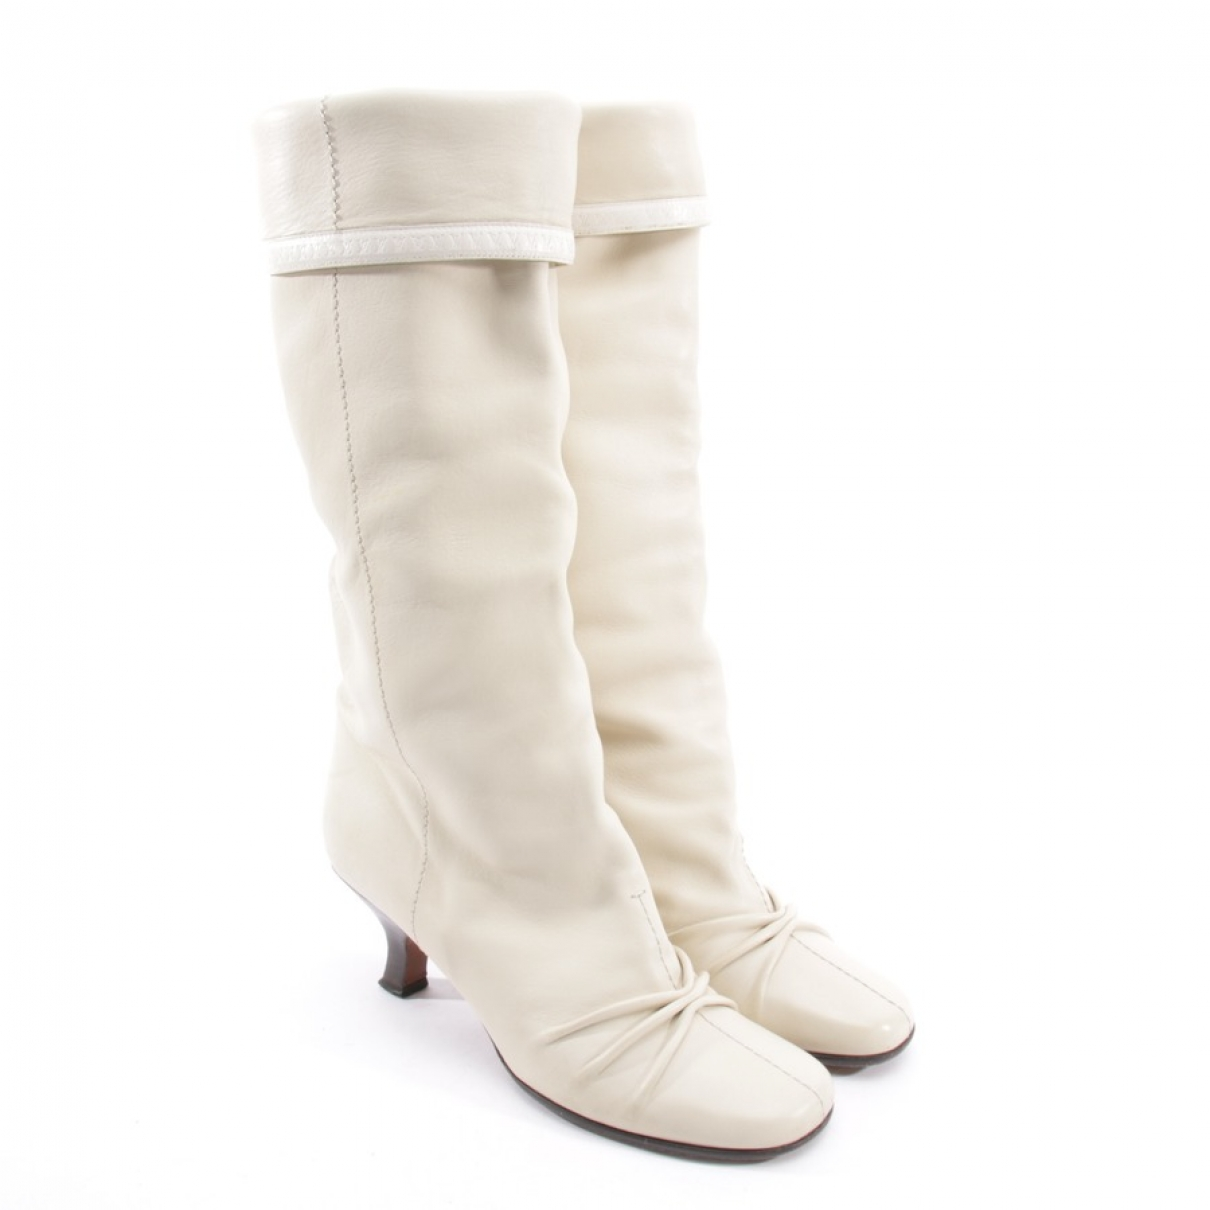 Louis Vuitton \N White Leather Boots for Women 37.5 EU